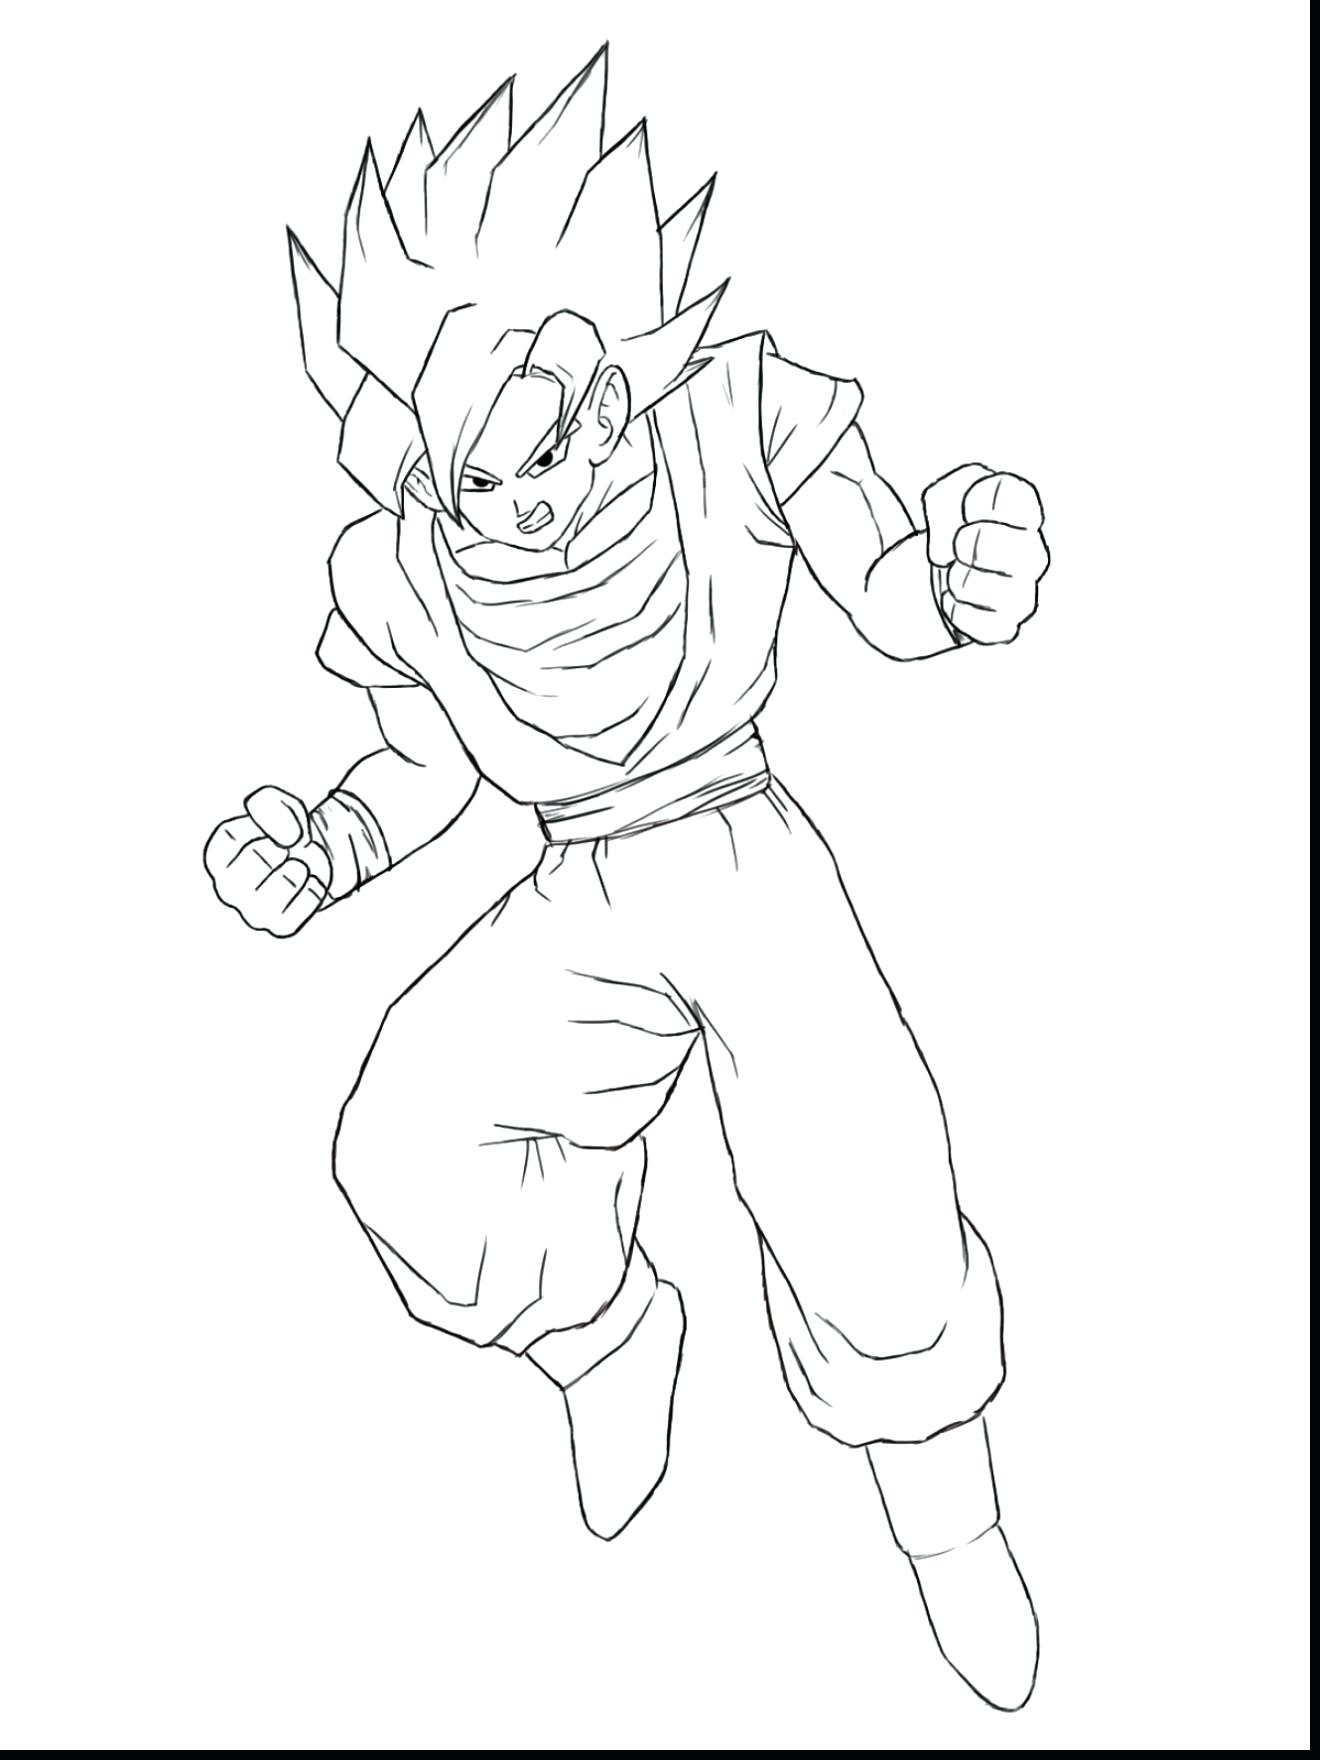 1320x1760 Coloring Vegeta Coloring Pages Excellent How To Draw Easy